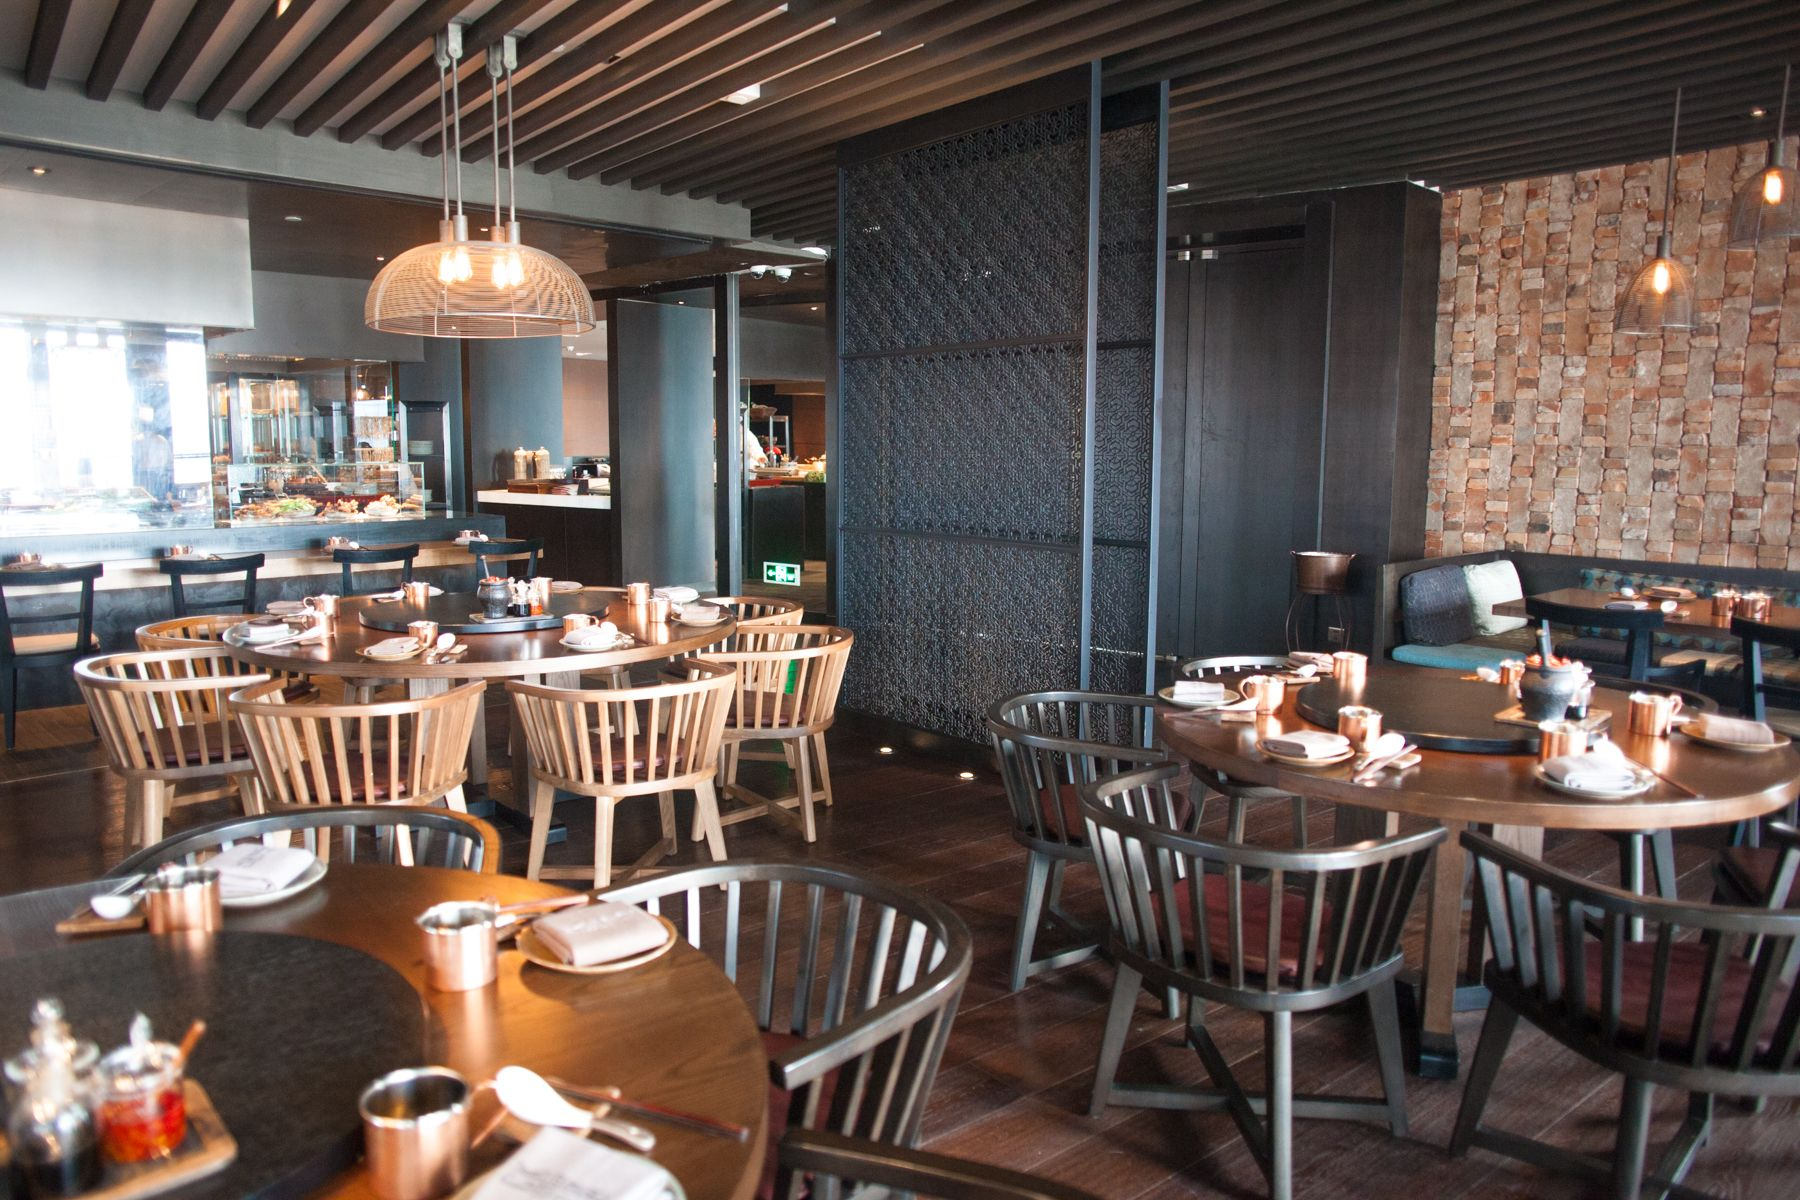 Country Kitchen Beijing Rosewood Hotel Restaurant (With